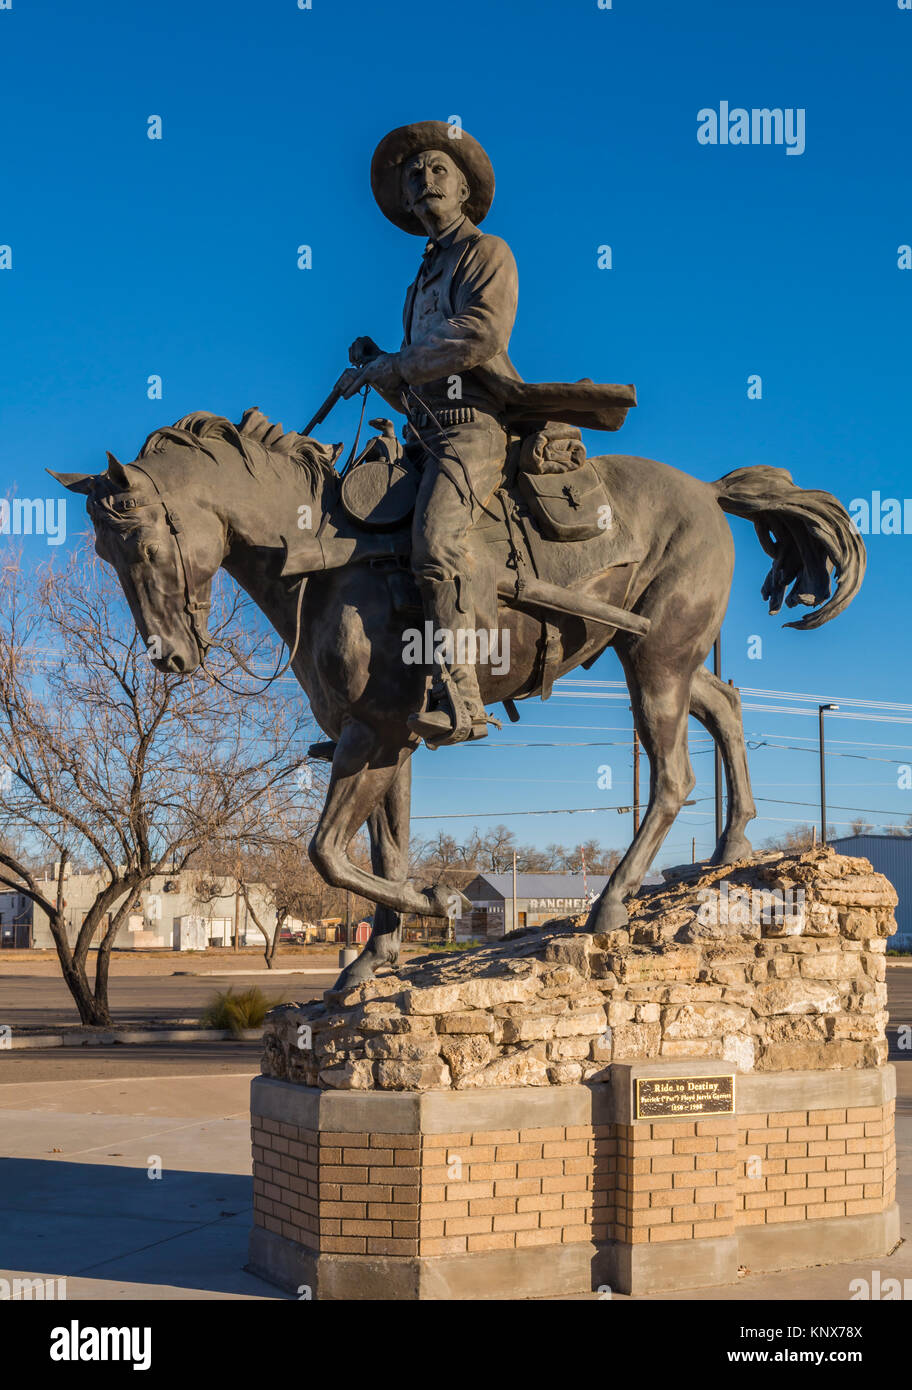 Pat Garrett statue in Roswell, New Mexico, USA of old west sheriff famous for shooting outlaw Billy the Kid near - Stock Image